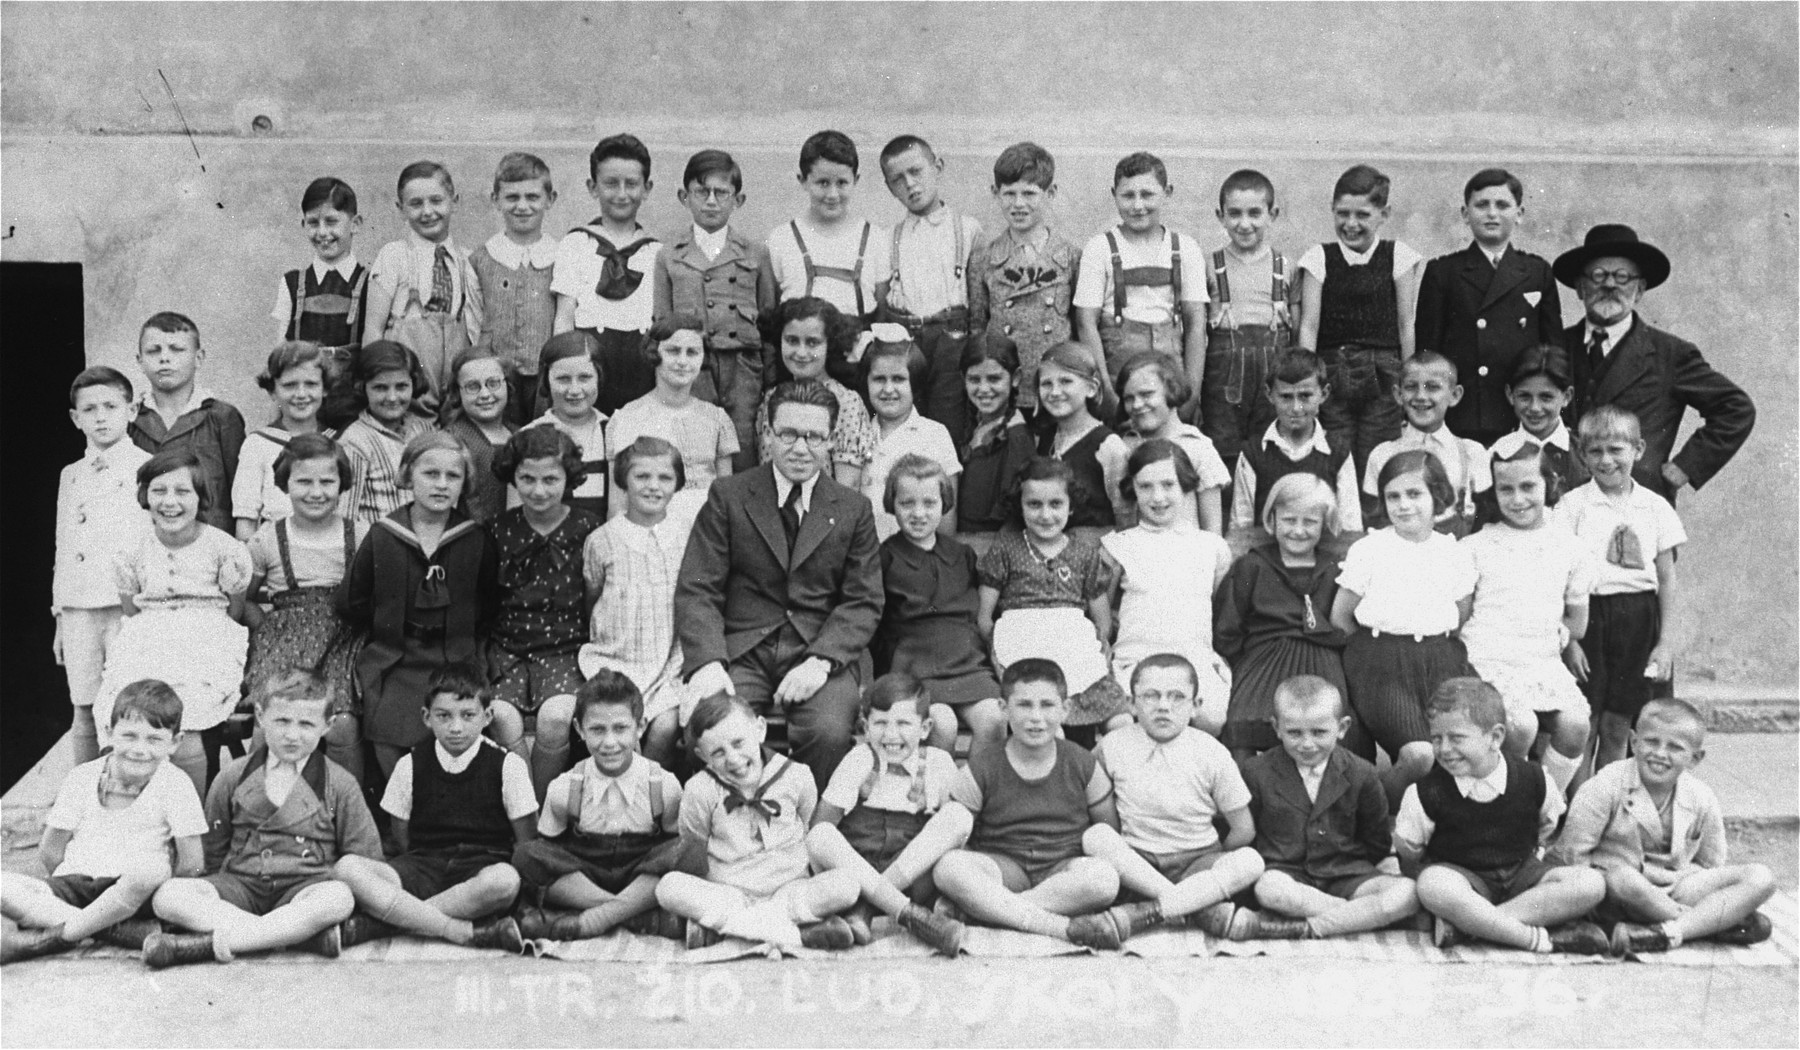 Arie Klein's third grade class at a Jewish elementary school.  The teacher, Shimon Goldberg,  survived the war and moved to Jerusalem.